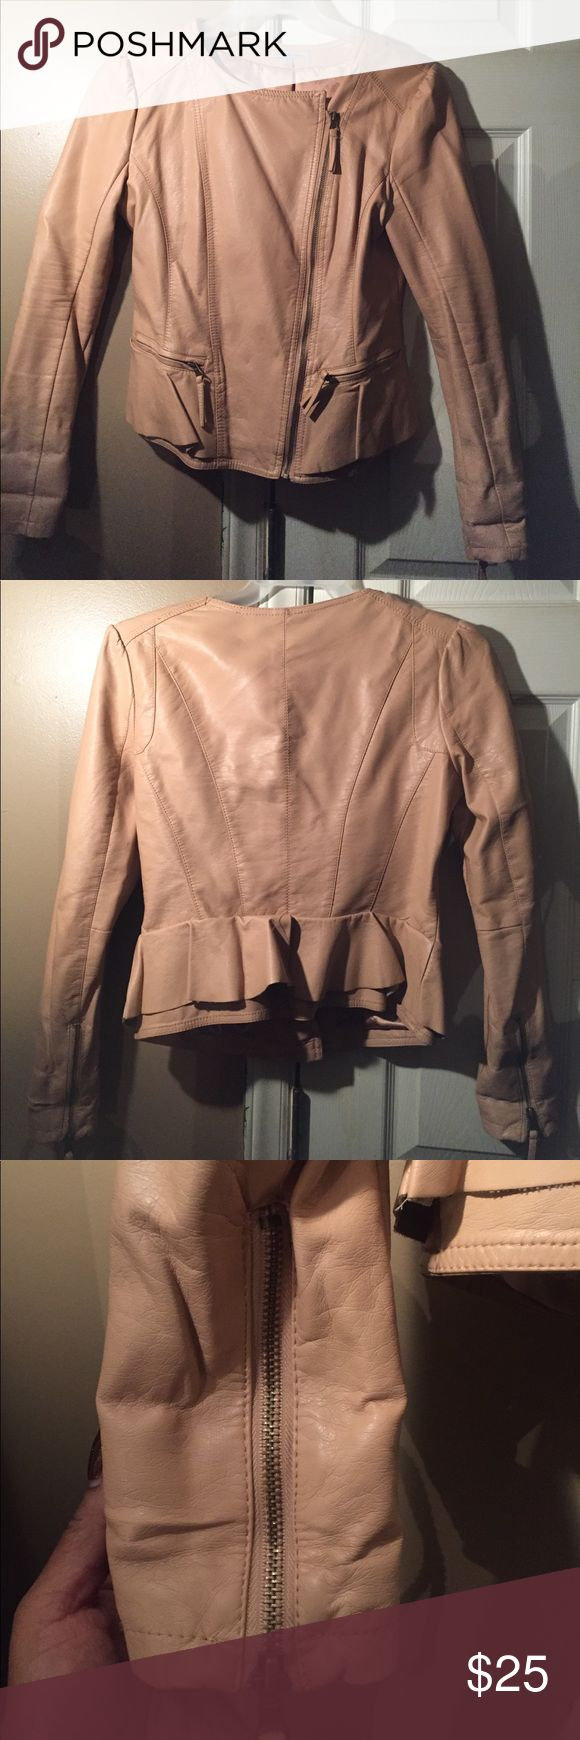 Ladies Leather Peplum Jacket This is so hot!! Ladies leather moto/peplum jacket that zips.. two pockets in front that zip the sleeves can zip up and down also.. the color is like an egg tan color.. sorry hard for me to say exact color but this jacket has no flaws perfect condition no issues wit it practically brand new.. can't fit it anymore wear this with your favorite jeans or skirt this leather jacket is very versatile see all pics Charlotte Russe Jackets & Coats